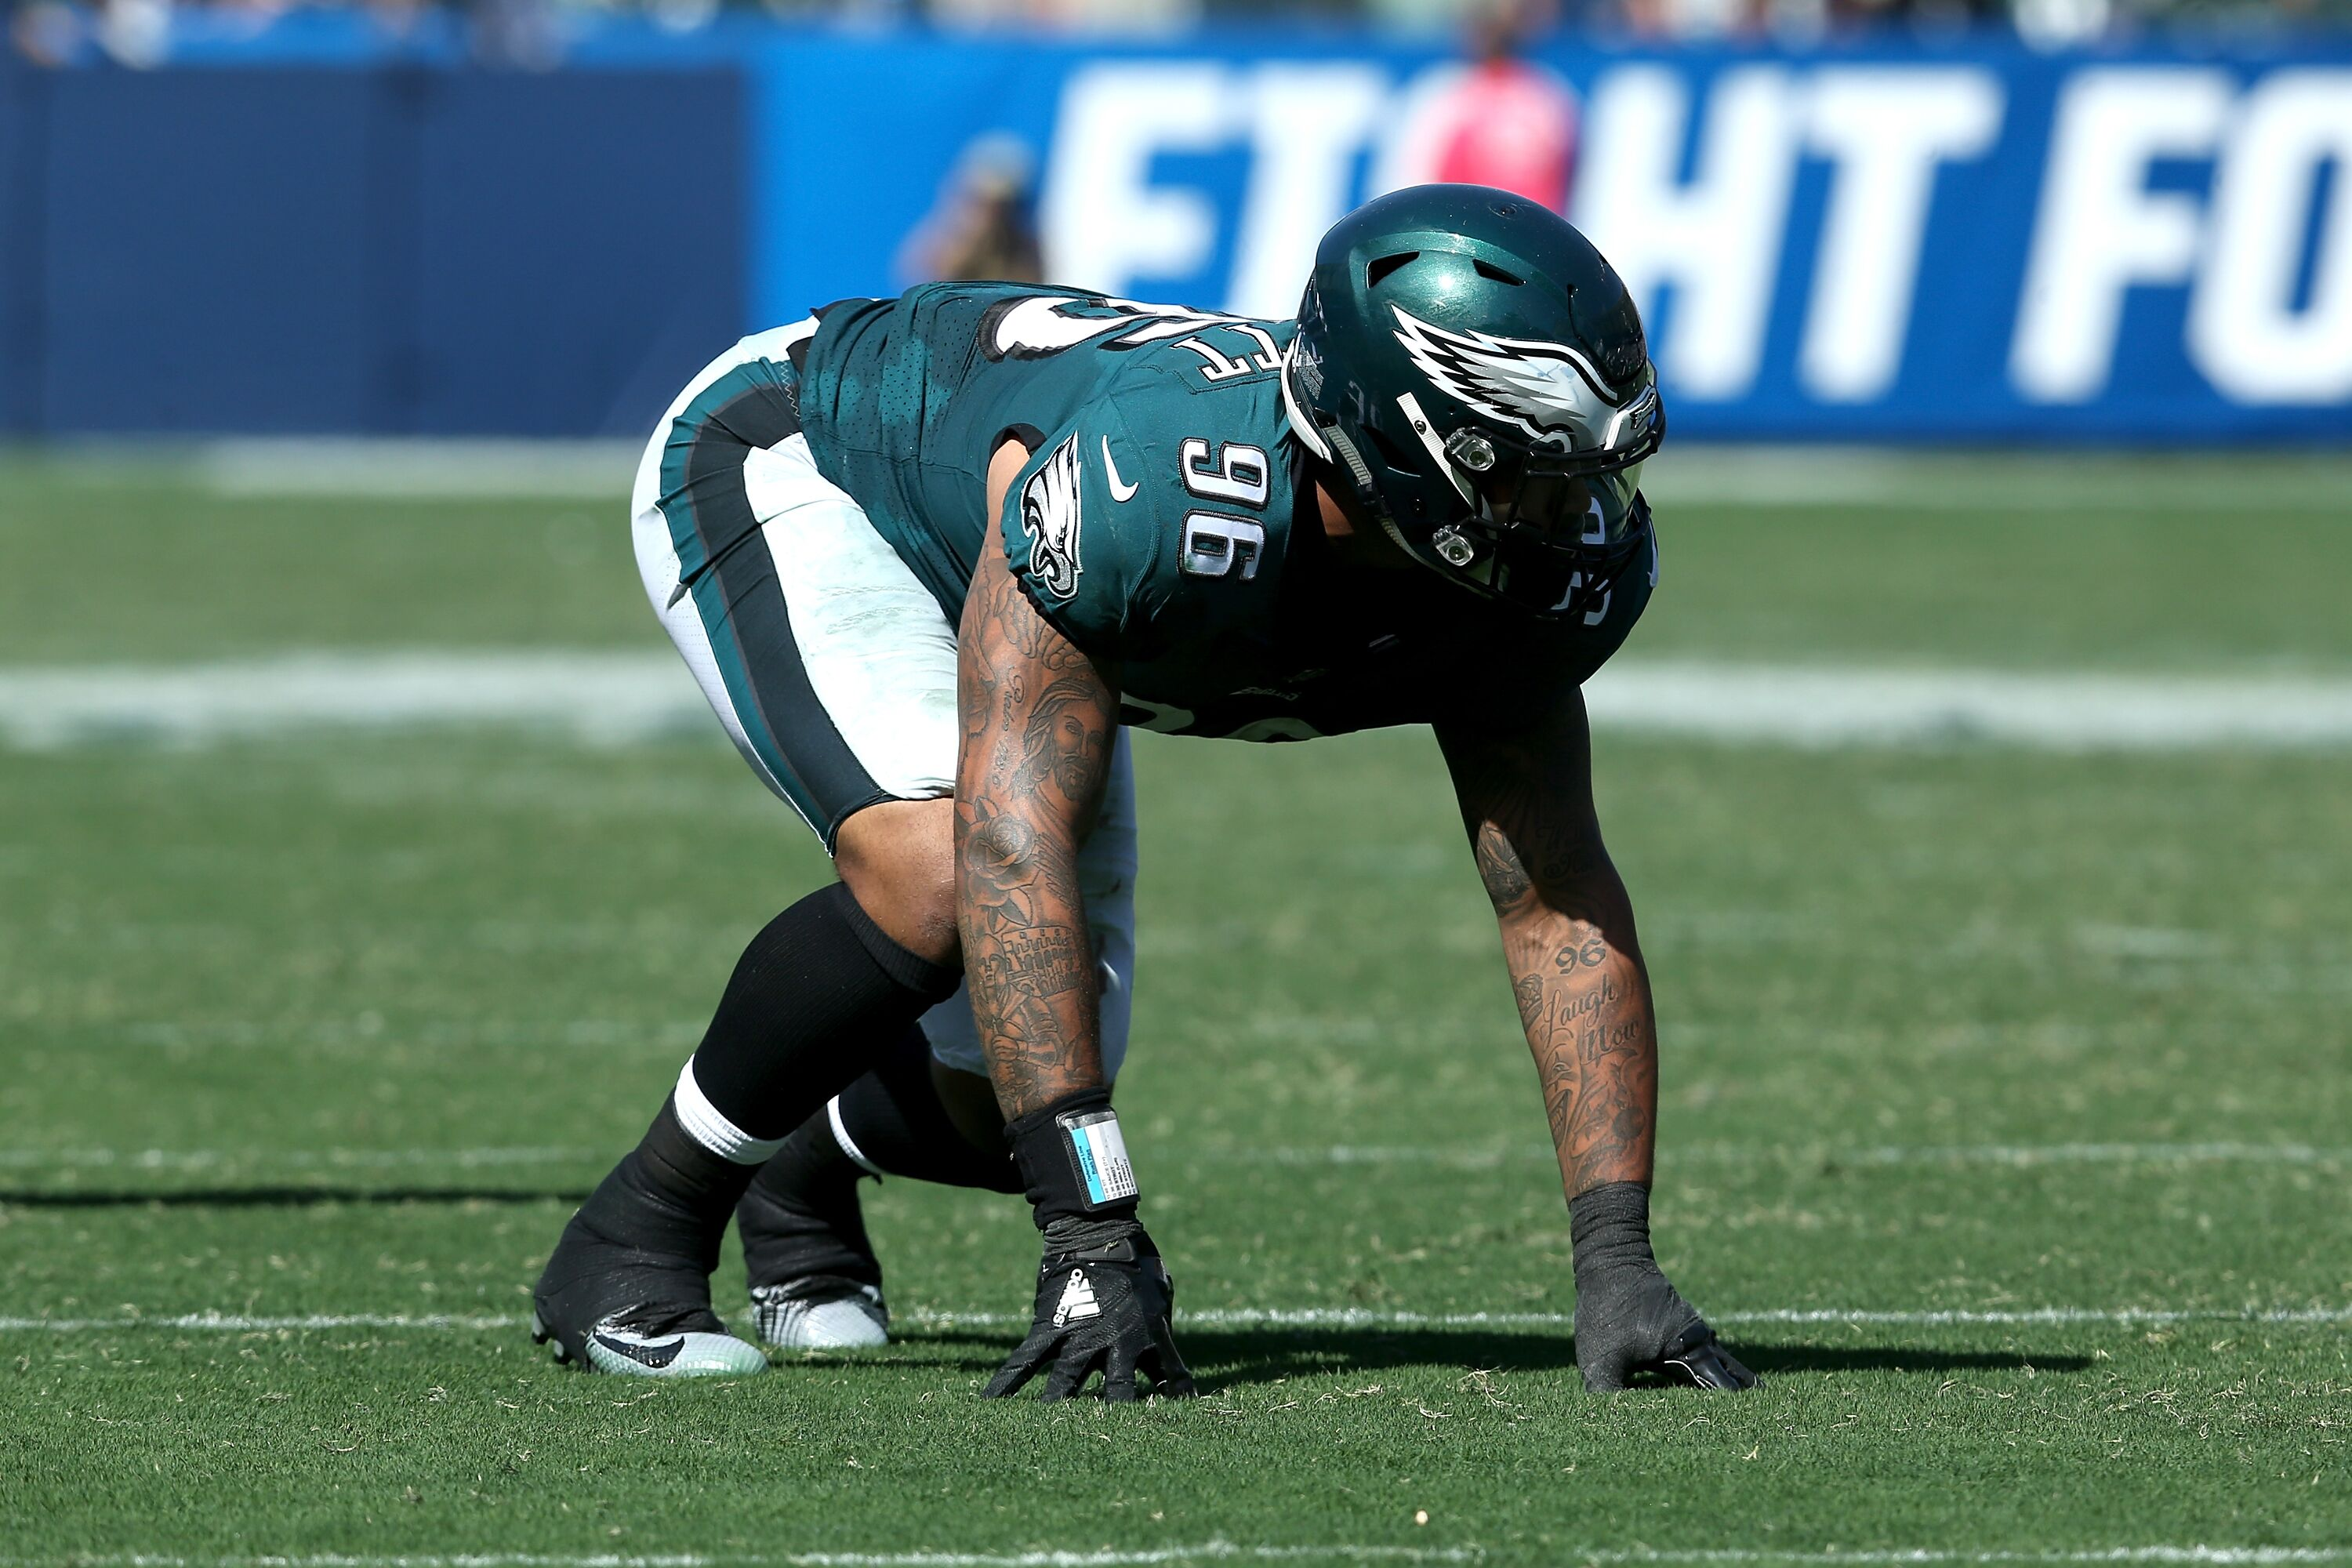 Eagles defensive end Derek Barnett loses his brother in a traffic accident